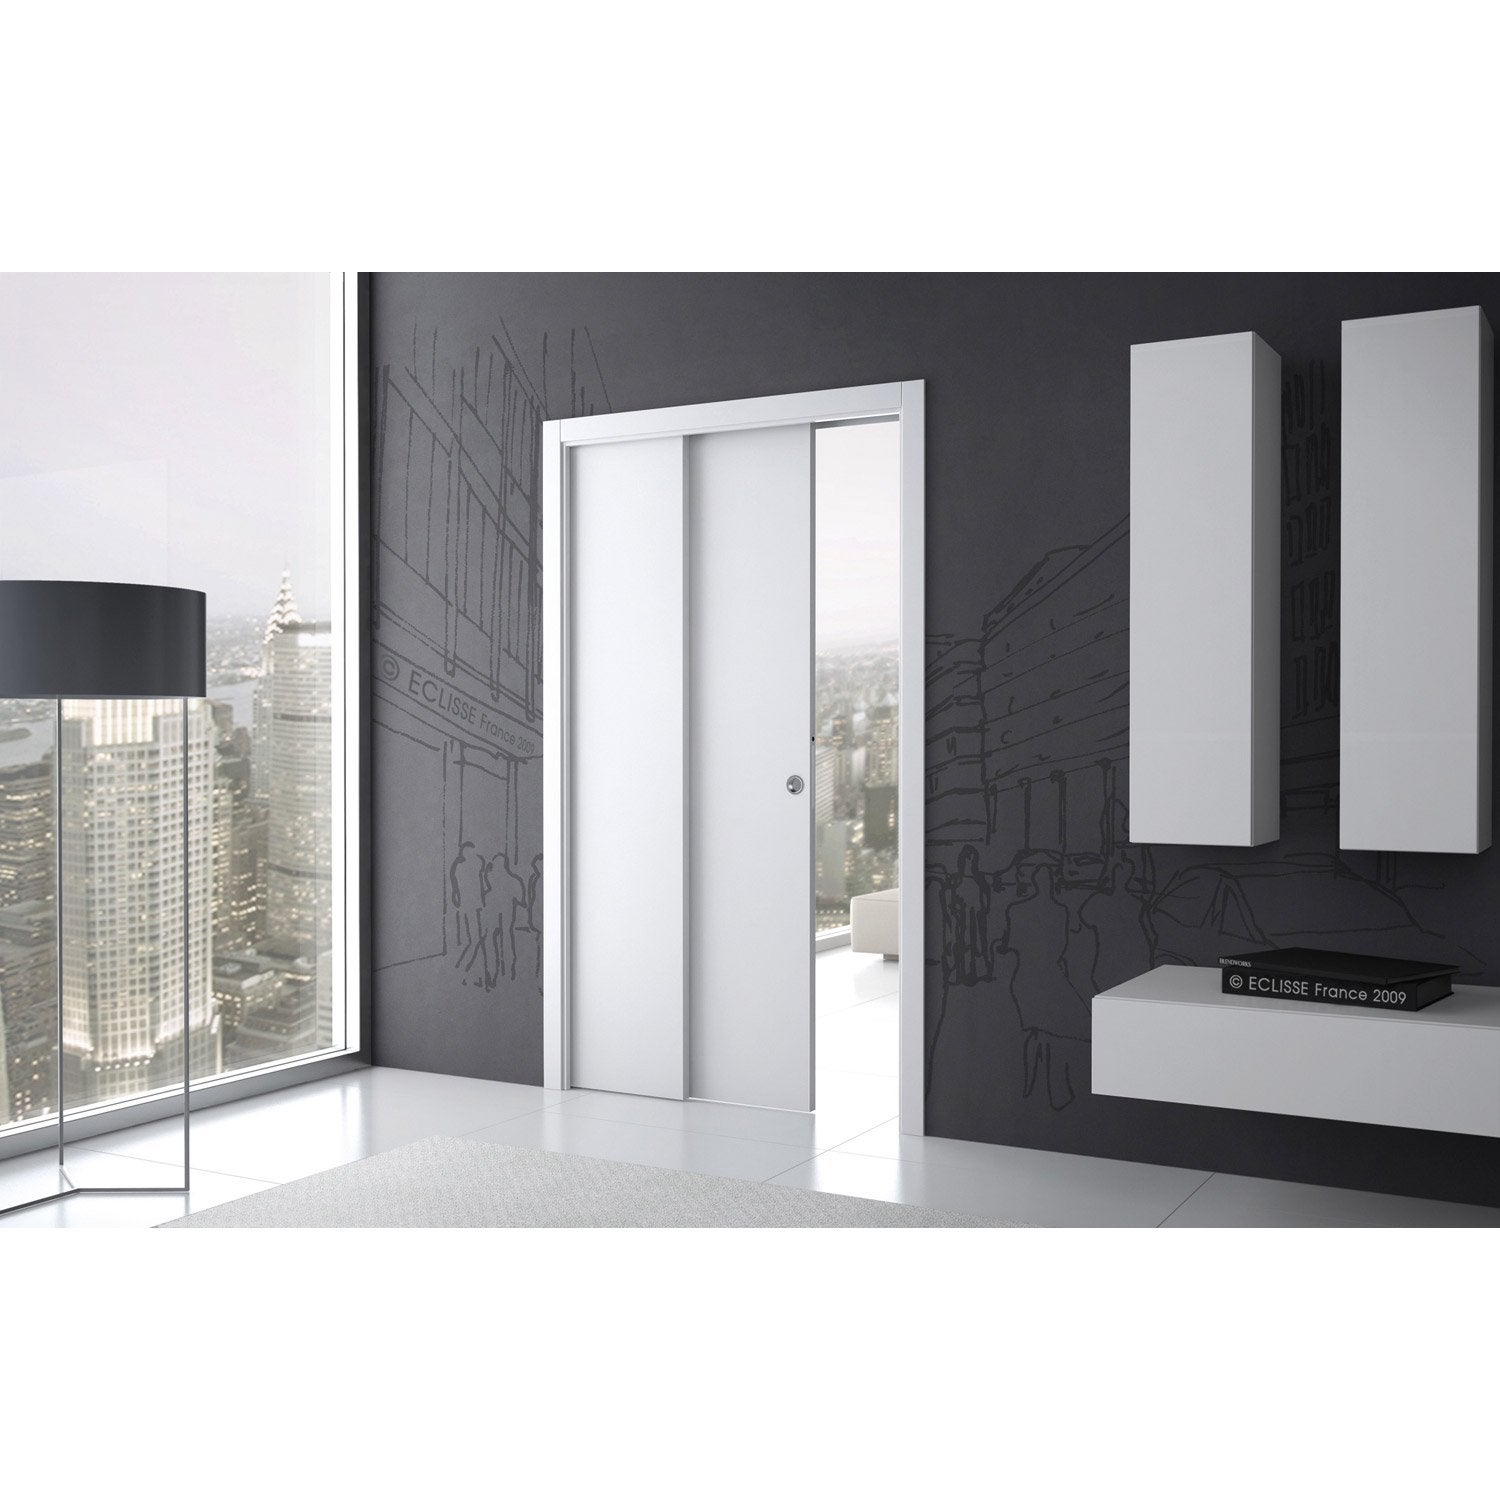 syst me galandage t lescopique eclisse pour porte de. Black Bedroom Furniture Sets. Home Design Ideas